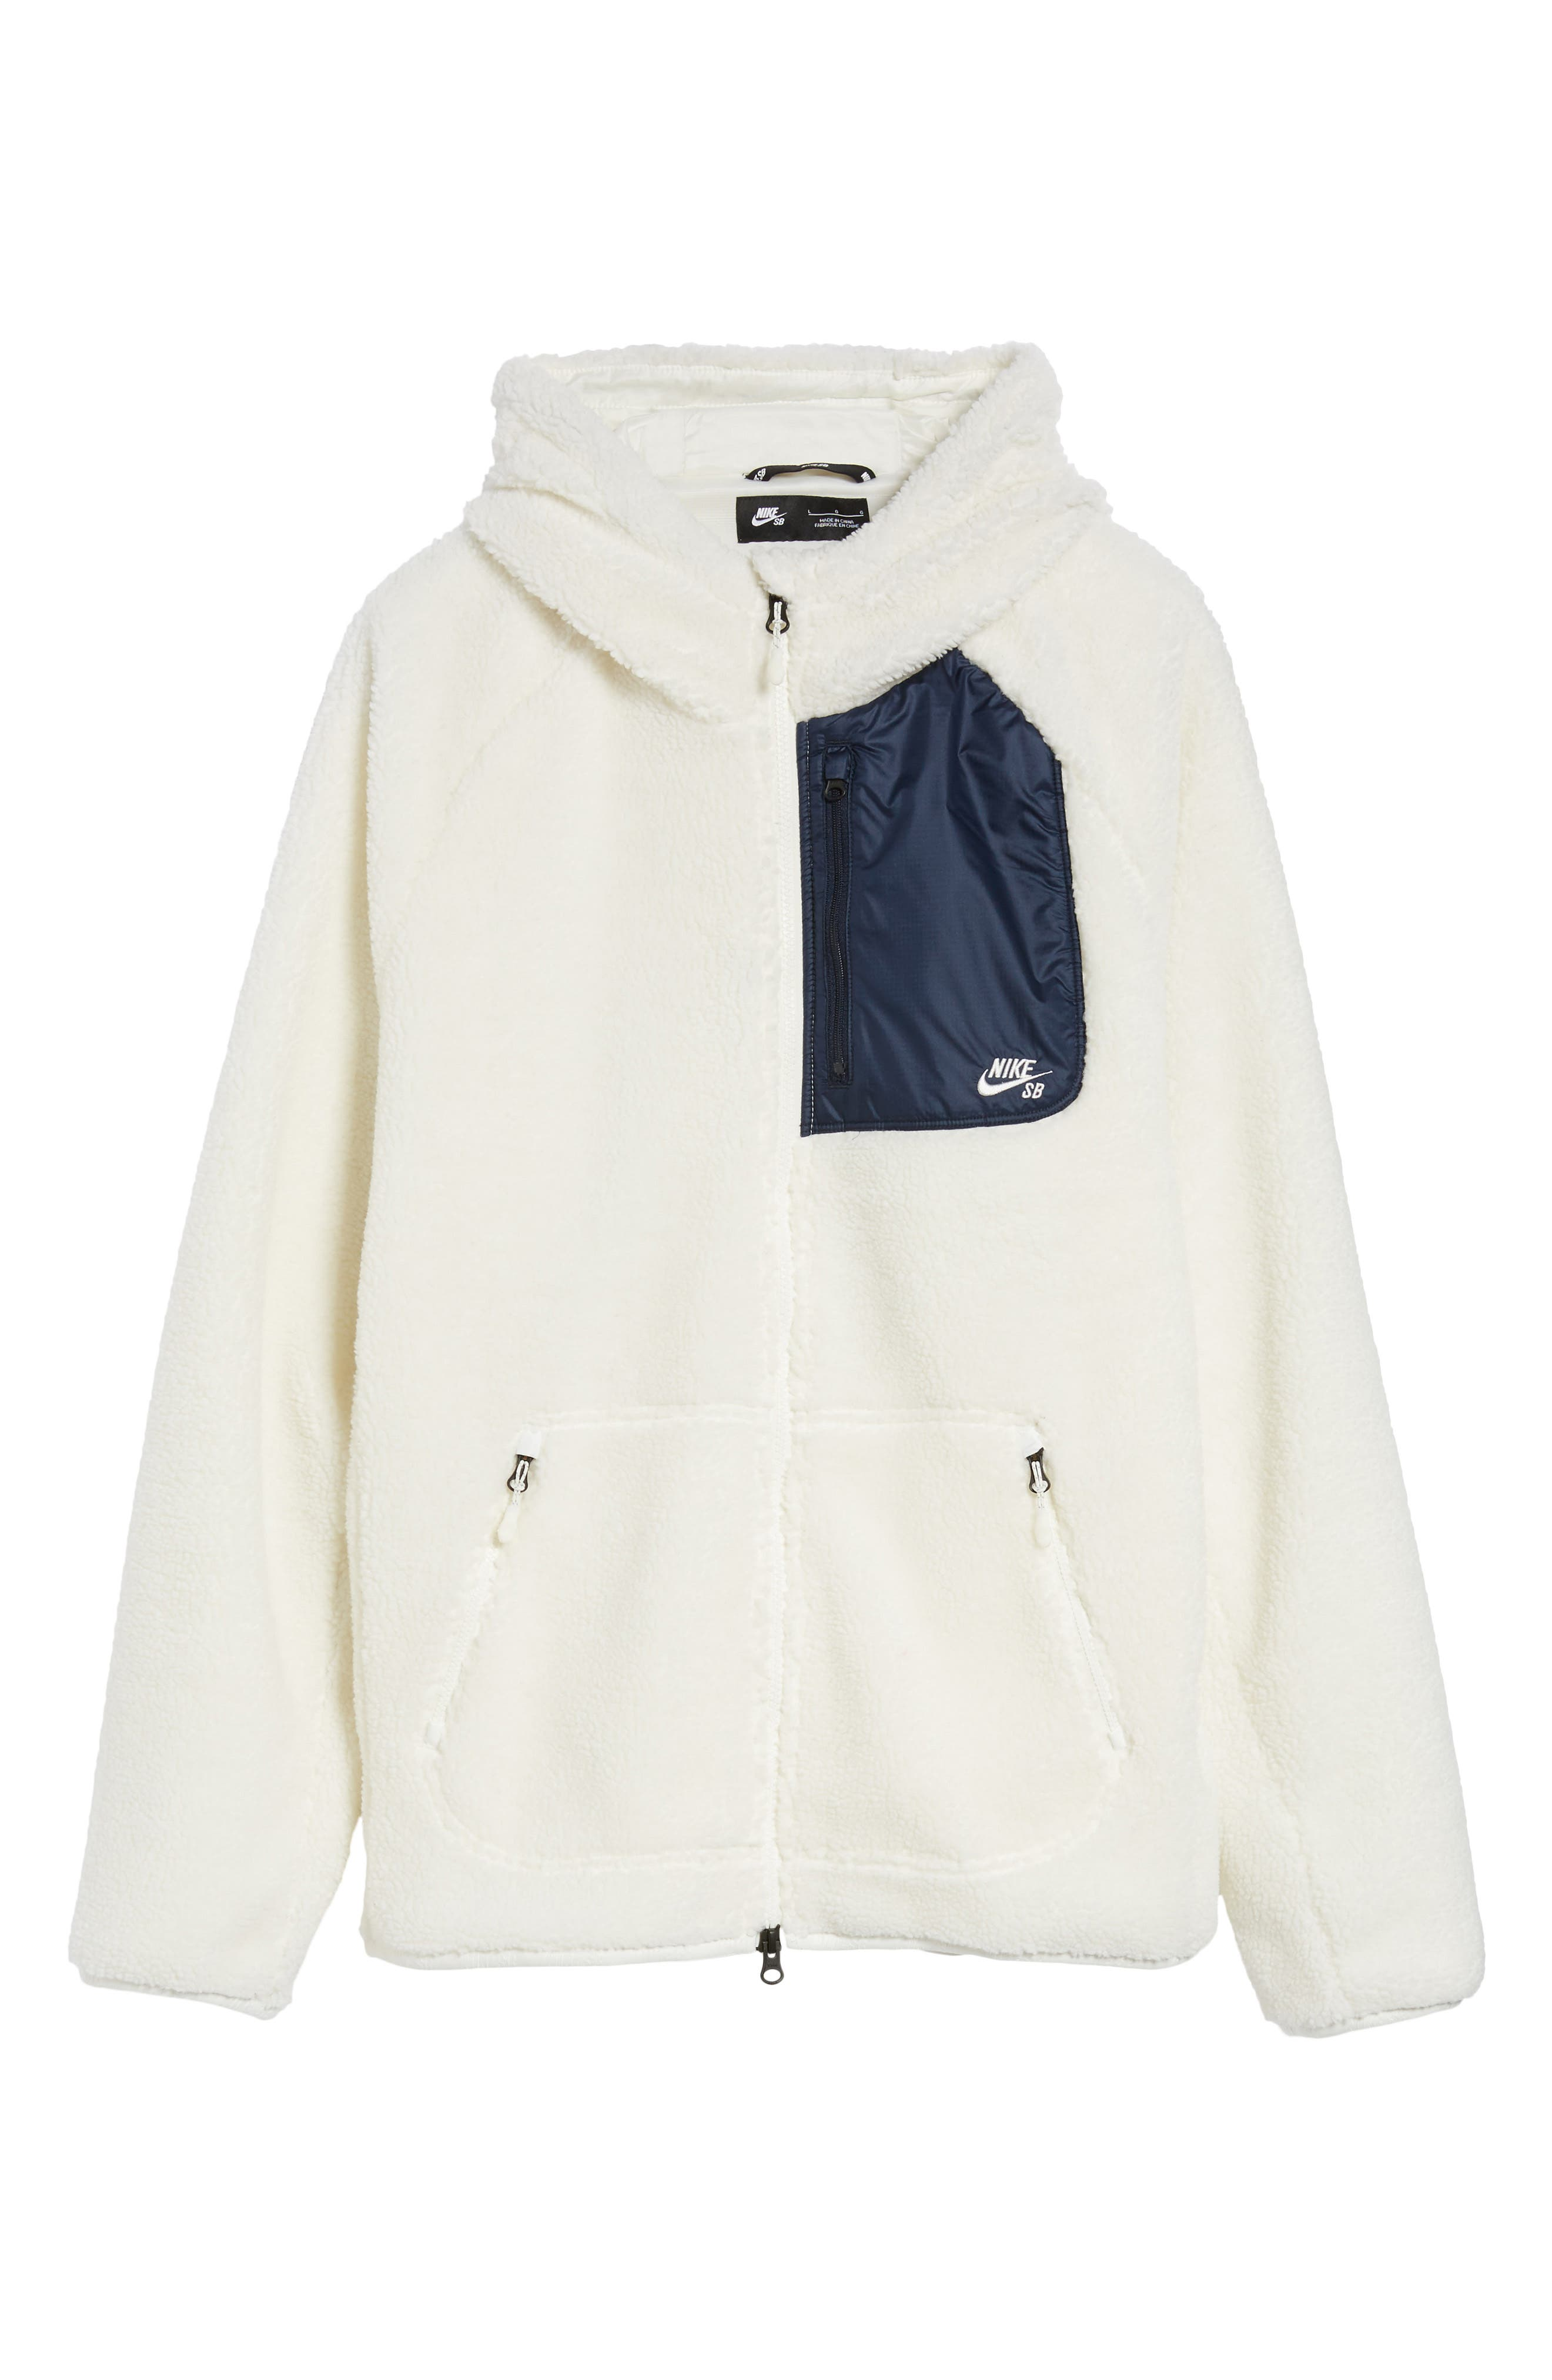 Everett Hoodie,                             Alternate thumbnail 6, color,                             Sail/ Obsidian/ Sail